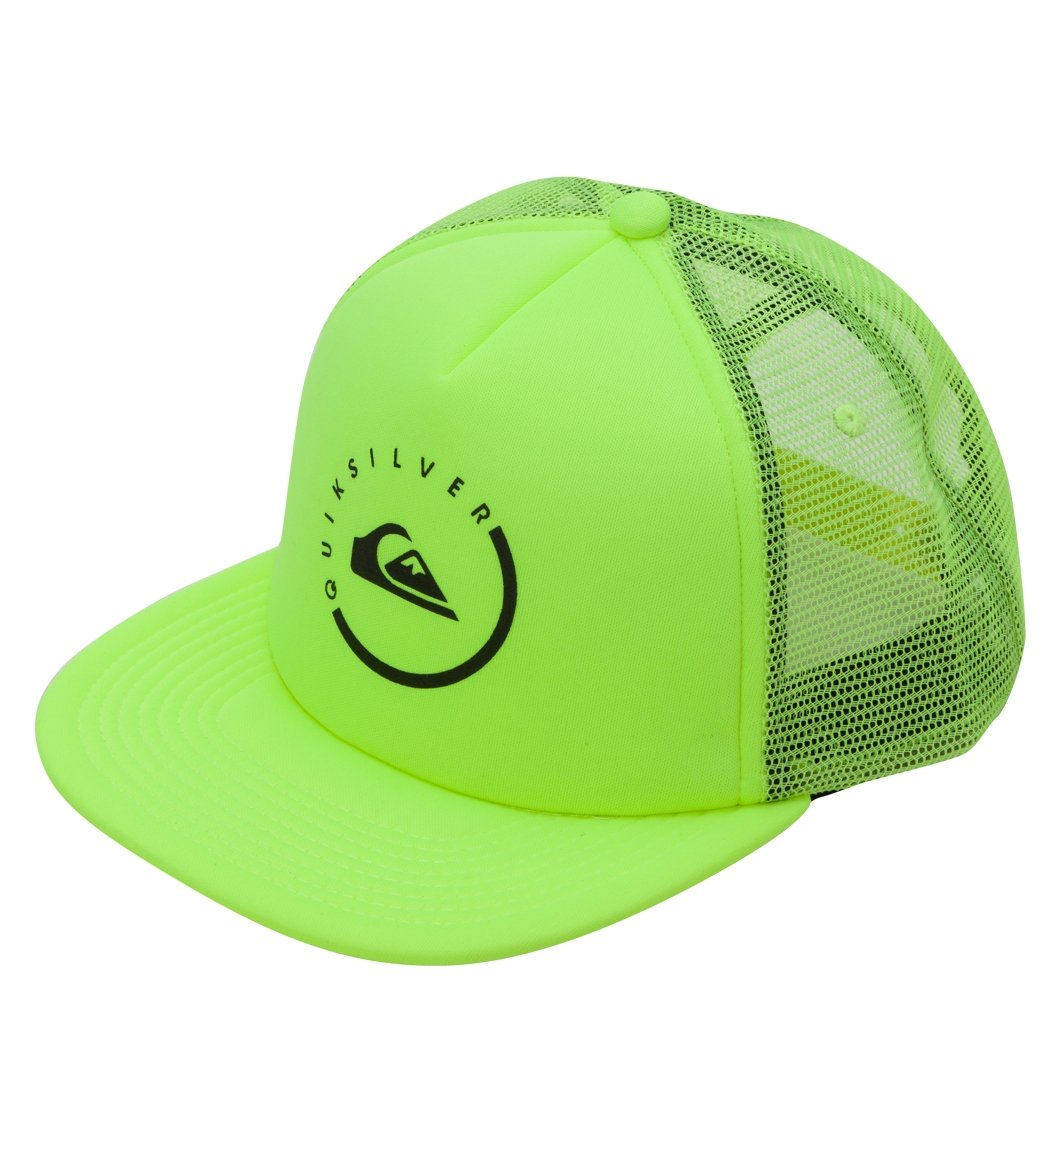 37a7f55b53b98 Quiksilver Men s Everyday Eclipse Trucker Hat at SwimOutlet.com